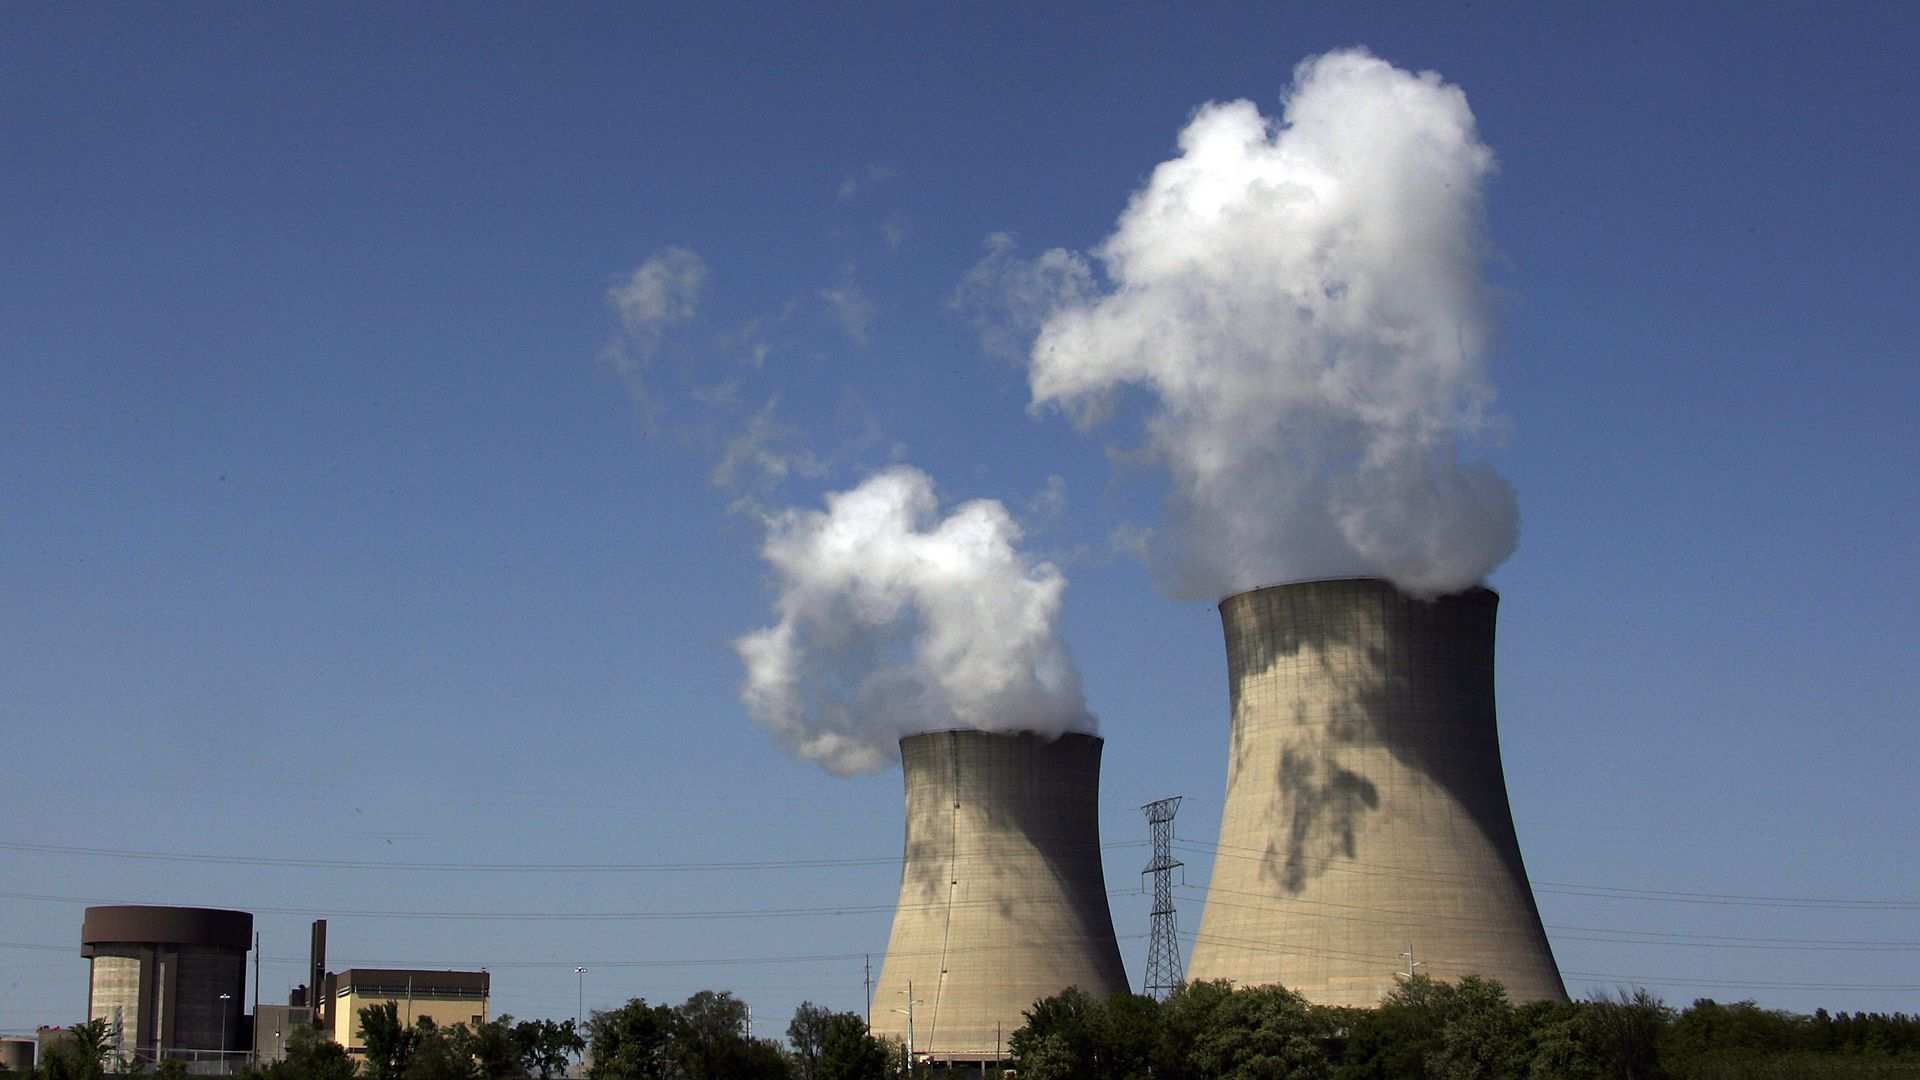 The Exelon Byron Nuclear Generating Station in Illinois.